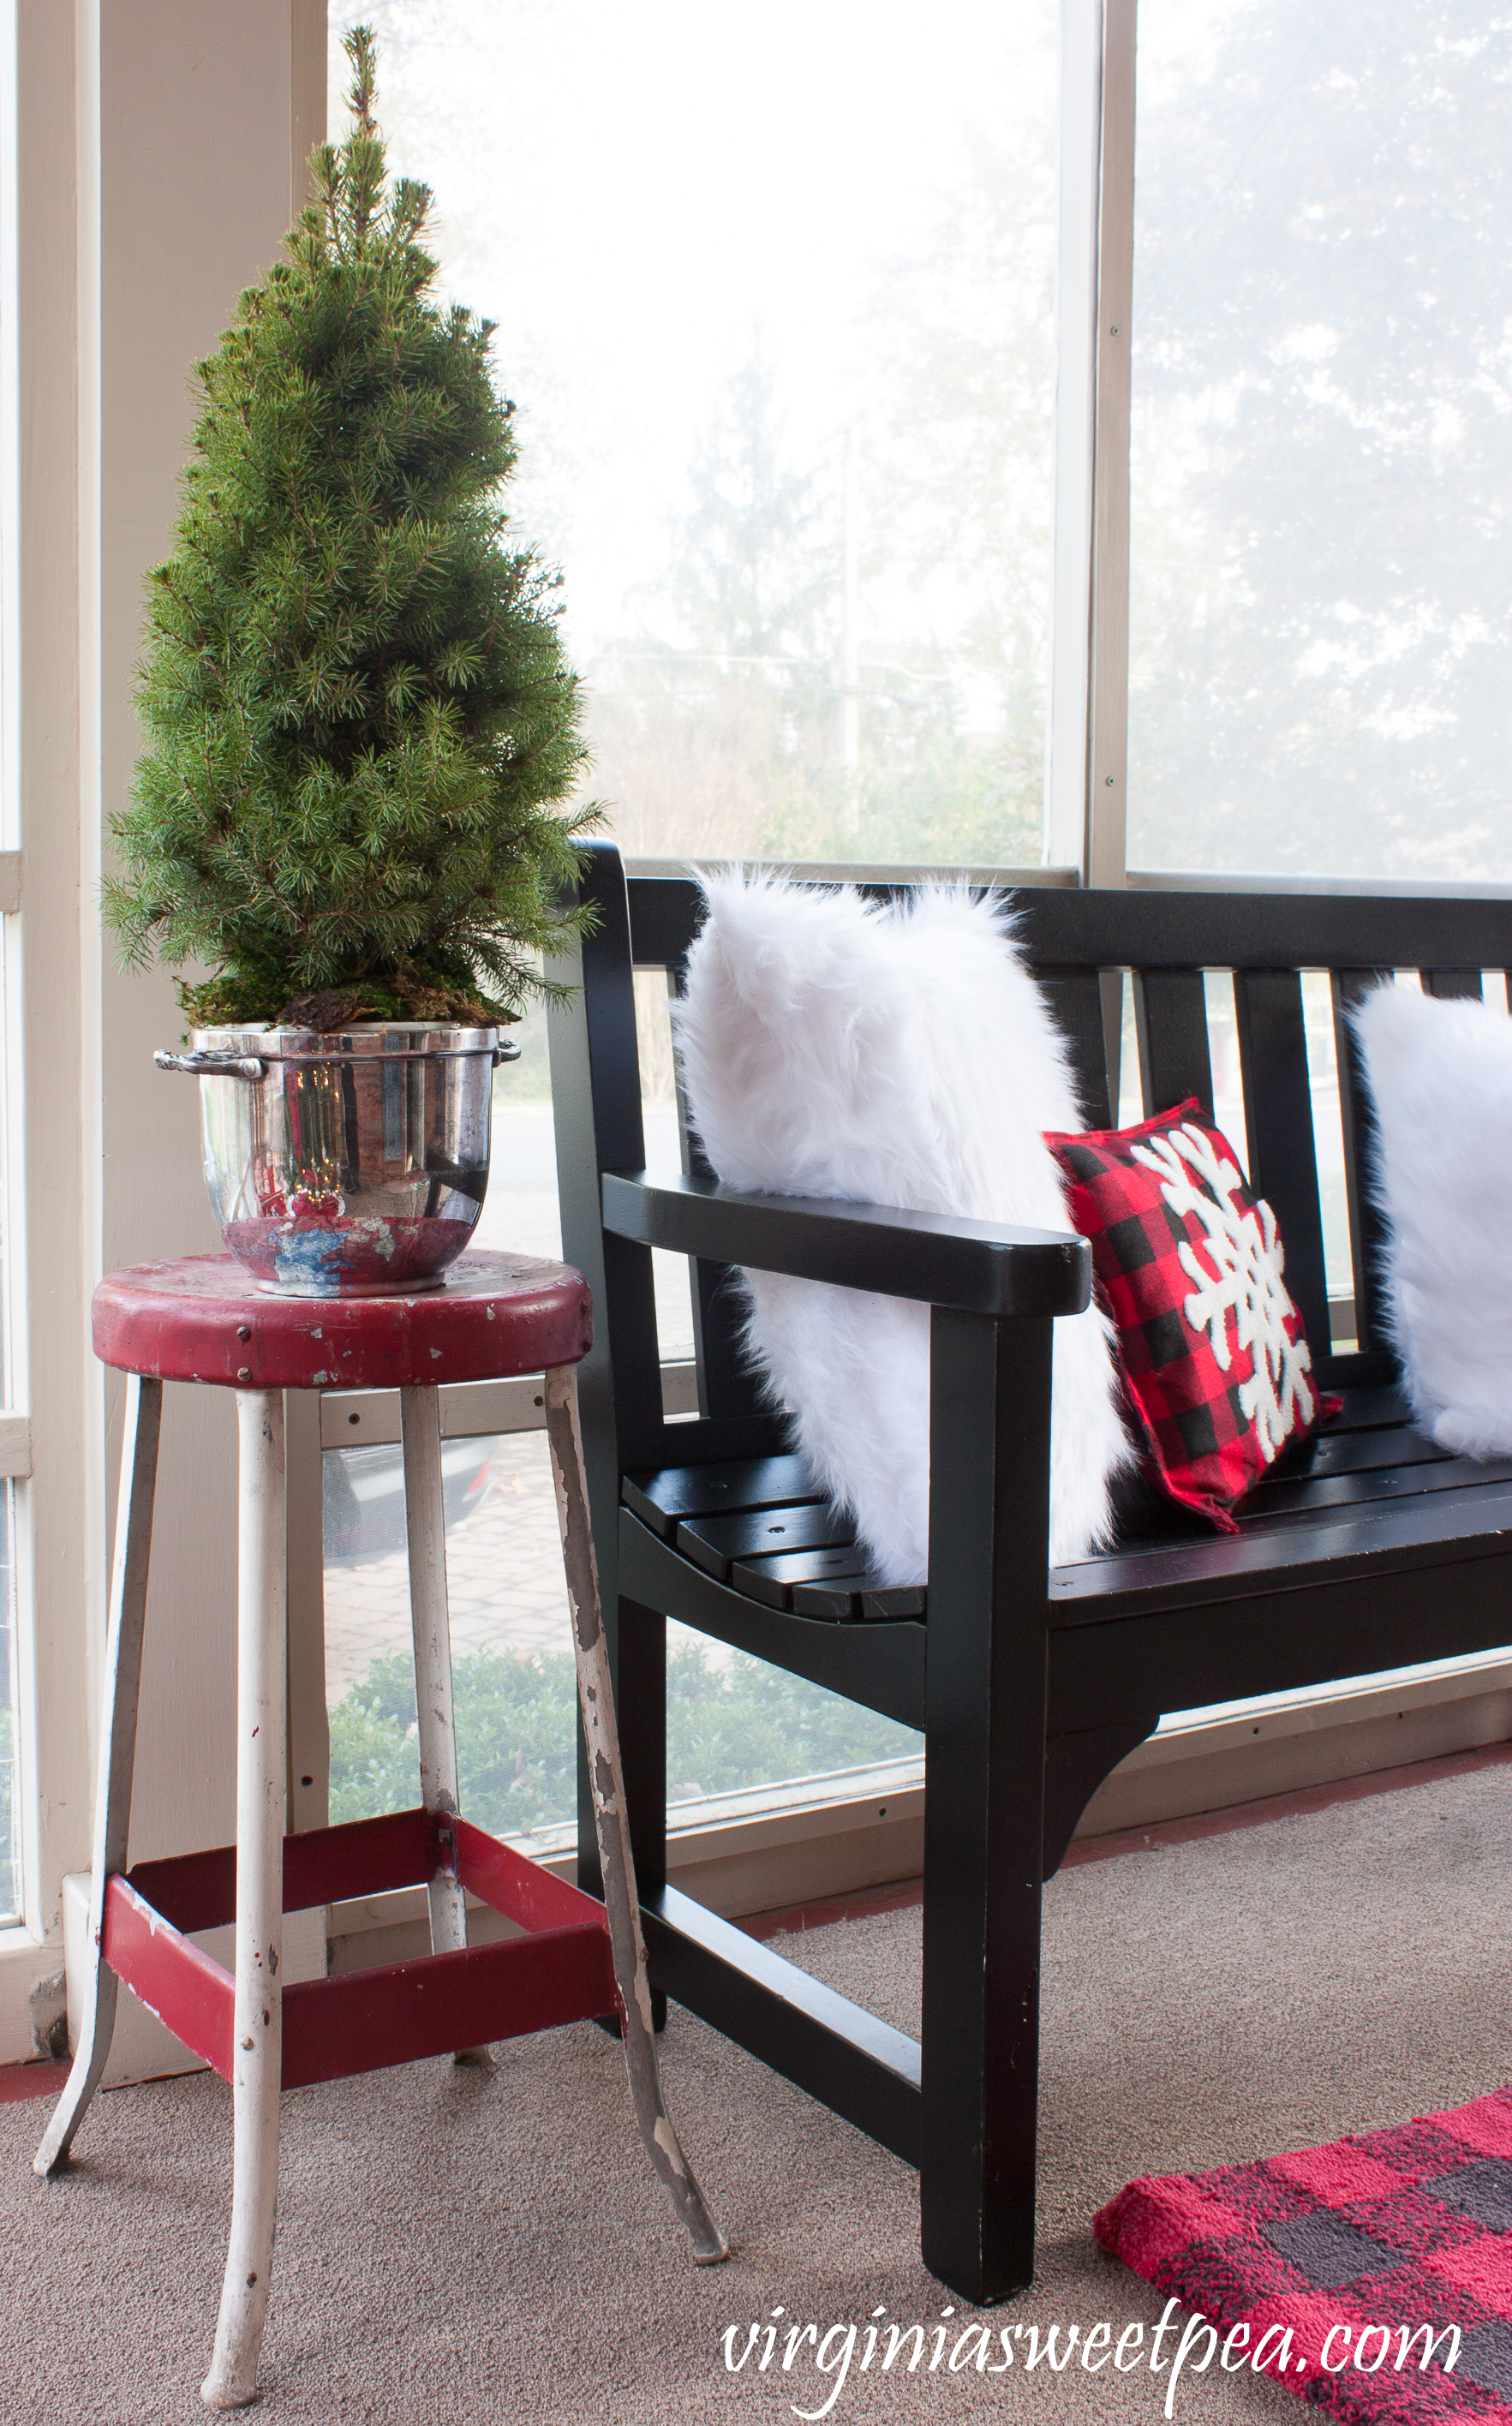 Christmas Porch Decor - A vintage metal stool is topped with a tree planted in a vintage silver ice bucket. #christmas #christmasdecorations #christmasporch #vintage #vintagechristmas